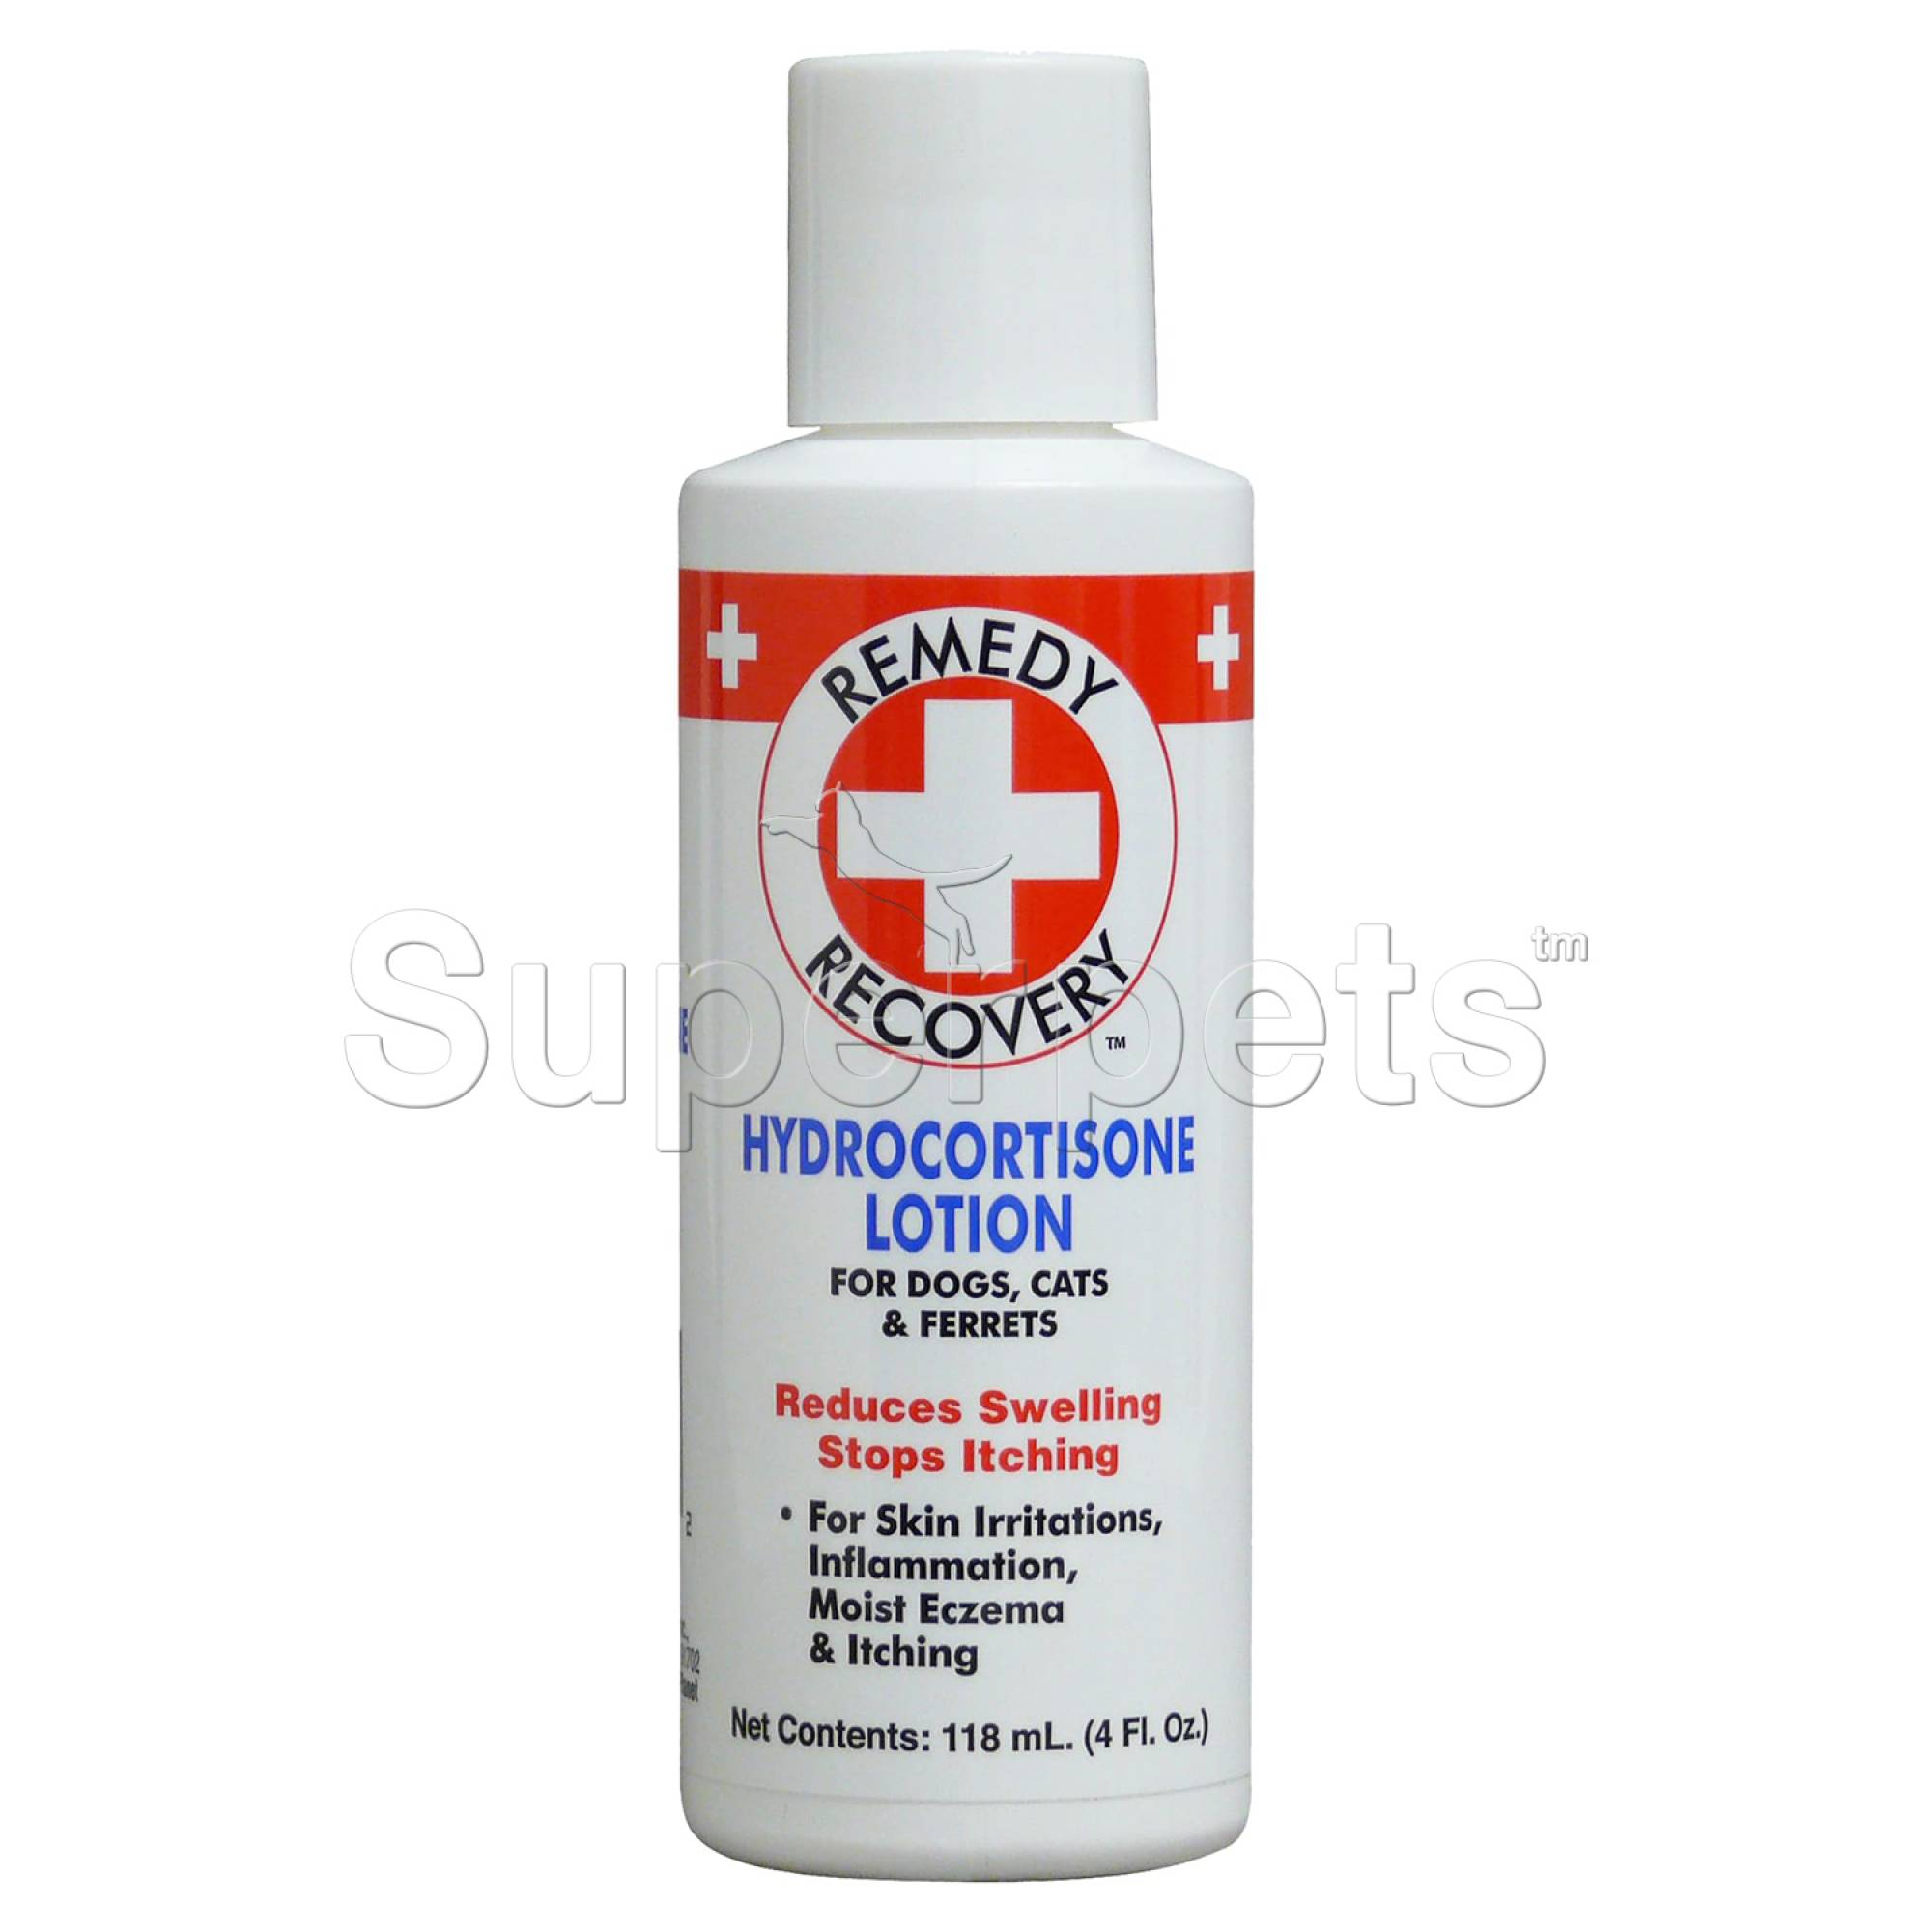 Remedy + Recovery - Hydrocortisone Lotion 118ml (4oz)